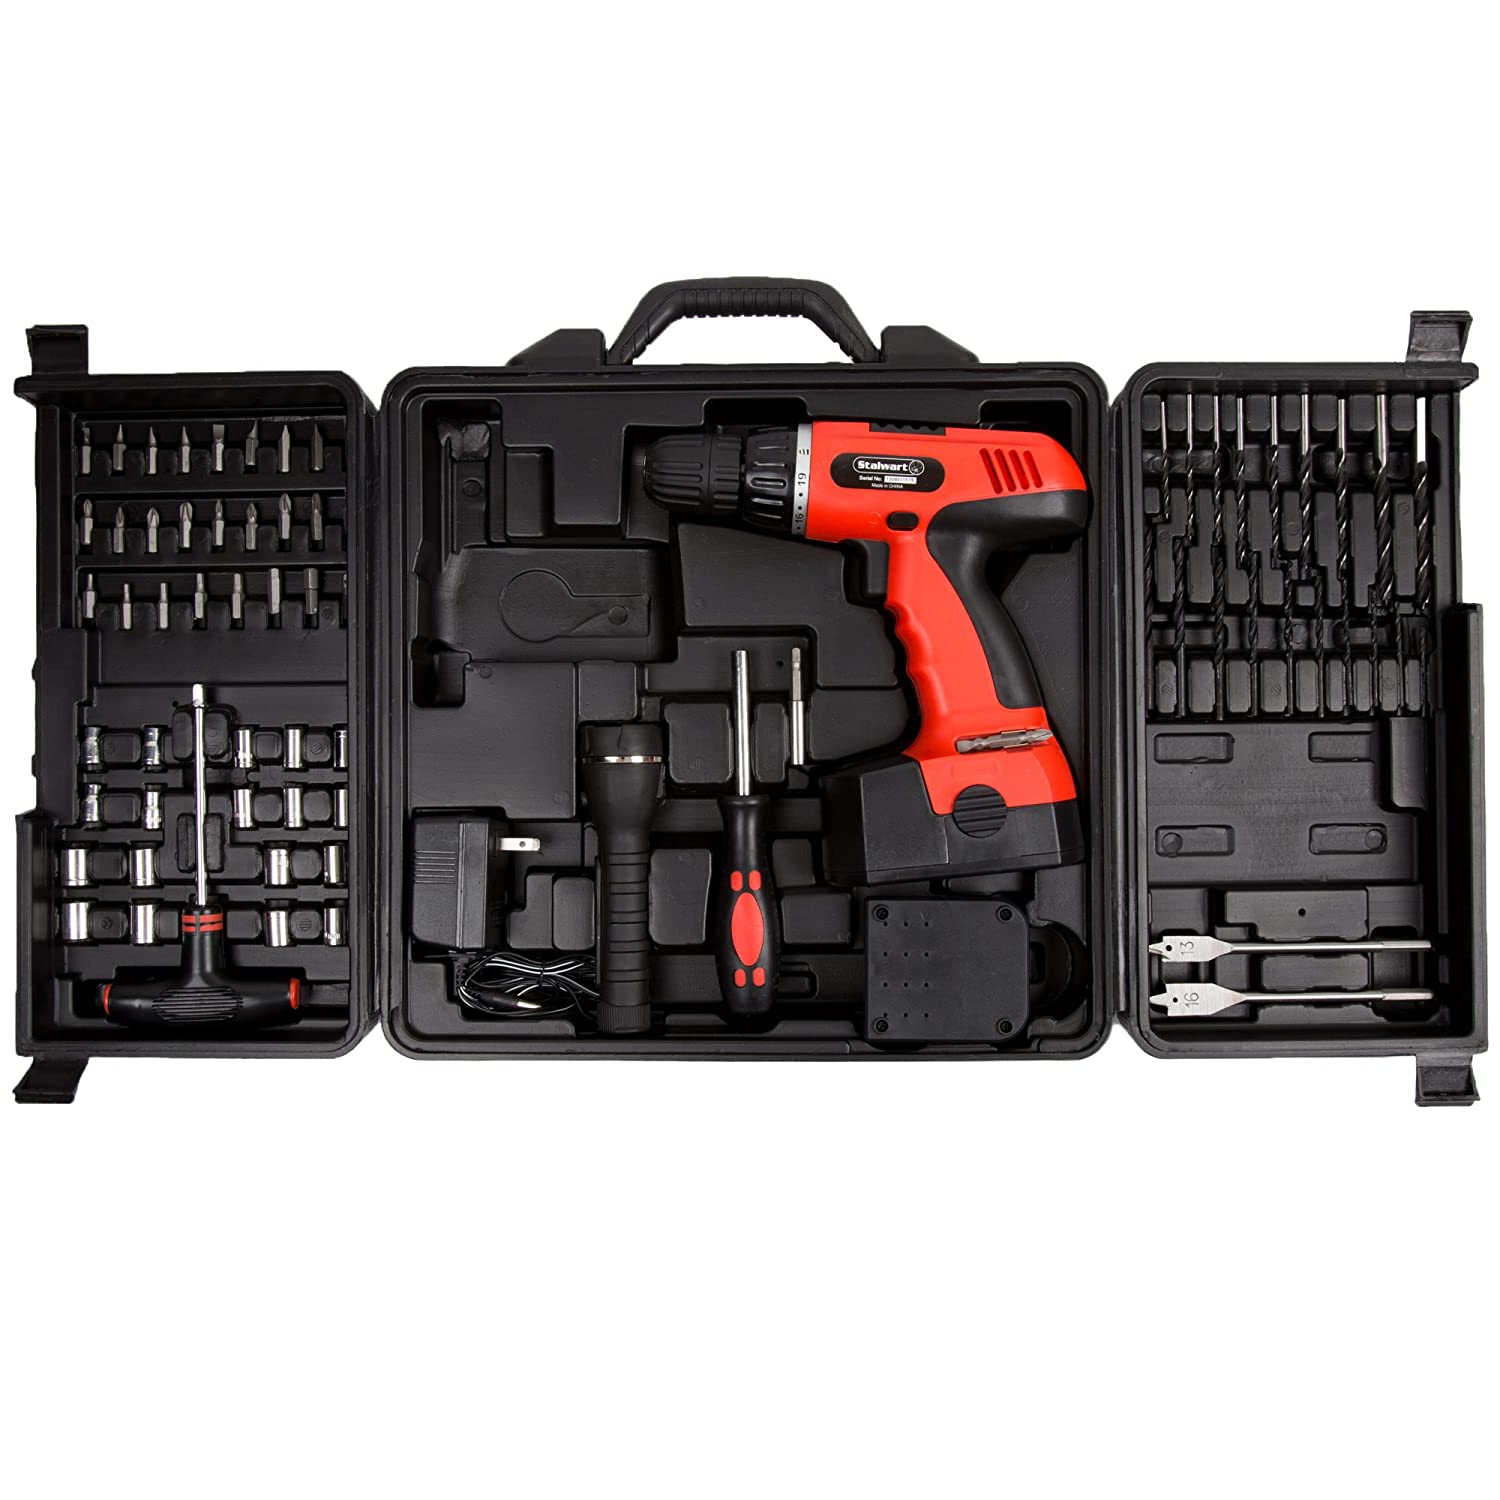 Cordless Drill Set 78 Piece Kit 18 Volt Power Tool with Bits Sockets Drivers Battery Charger AC Adapter Flashlight and Carrying Case by Stalwart